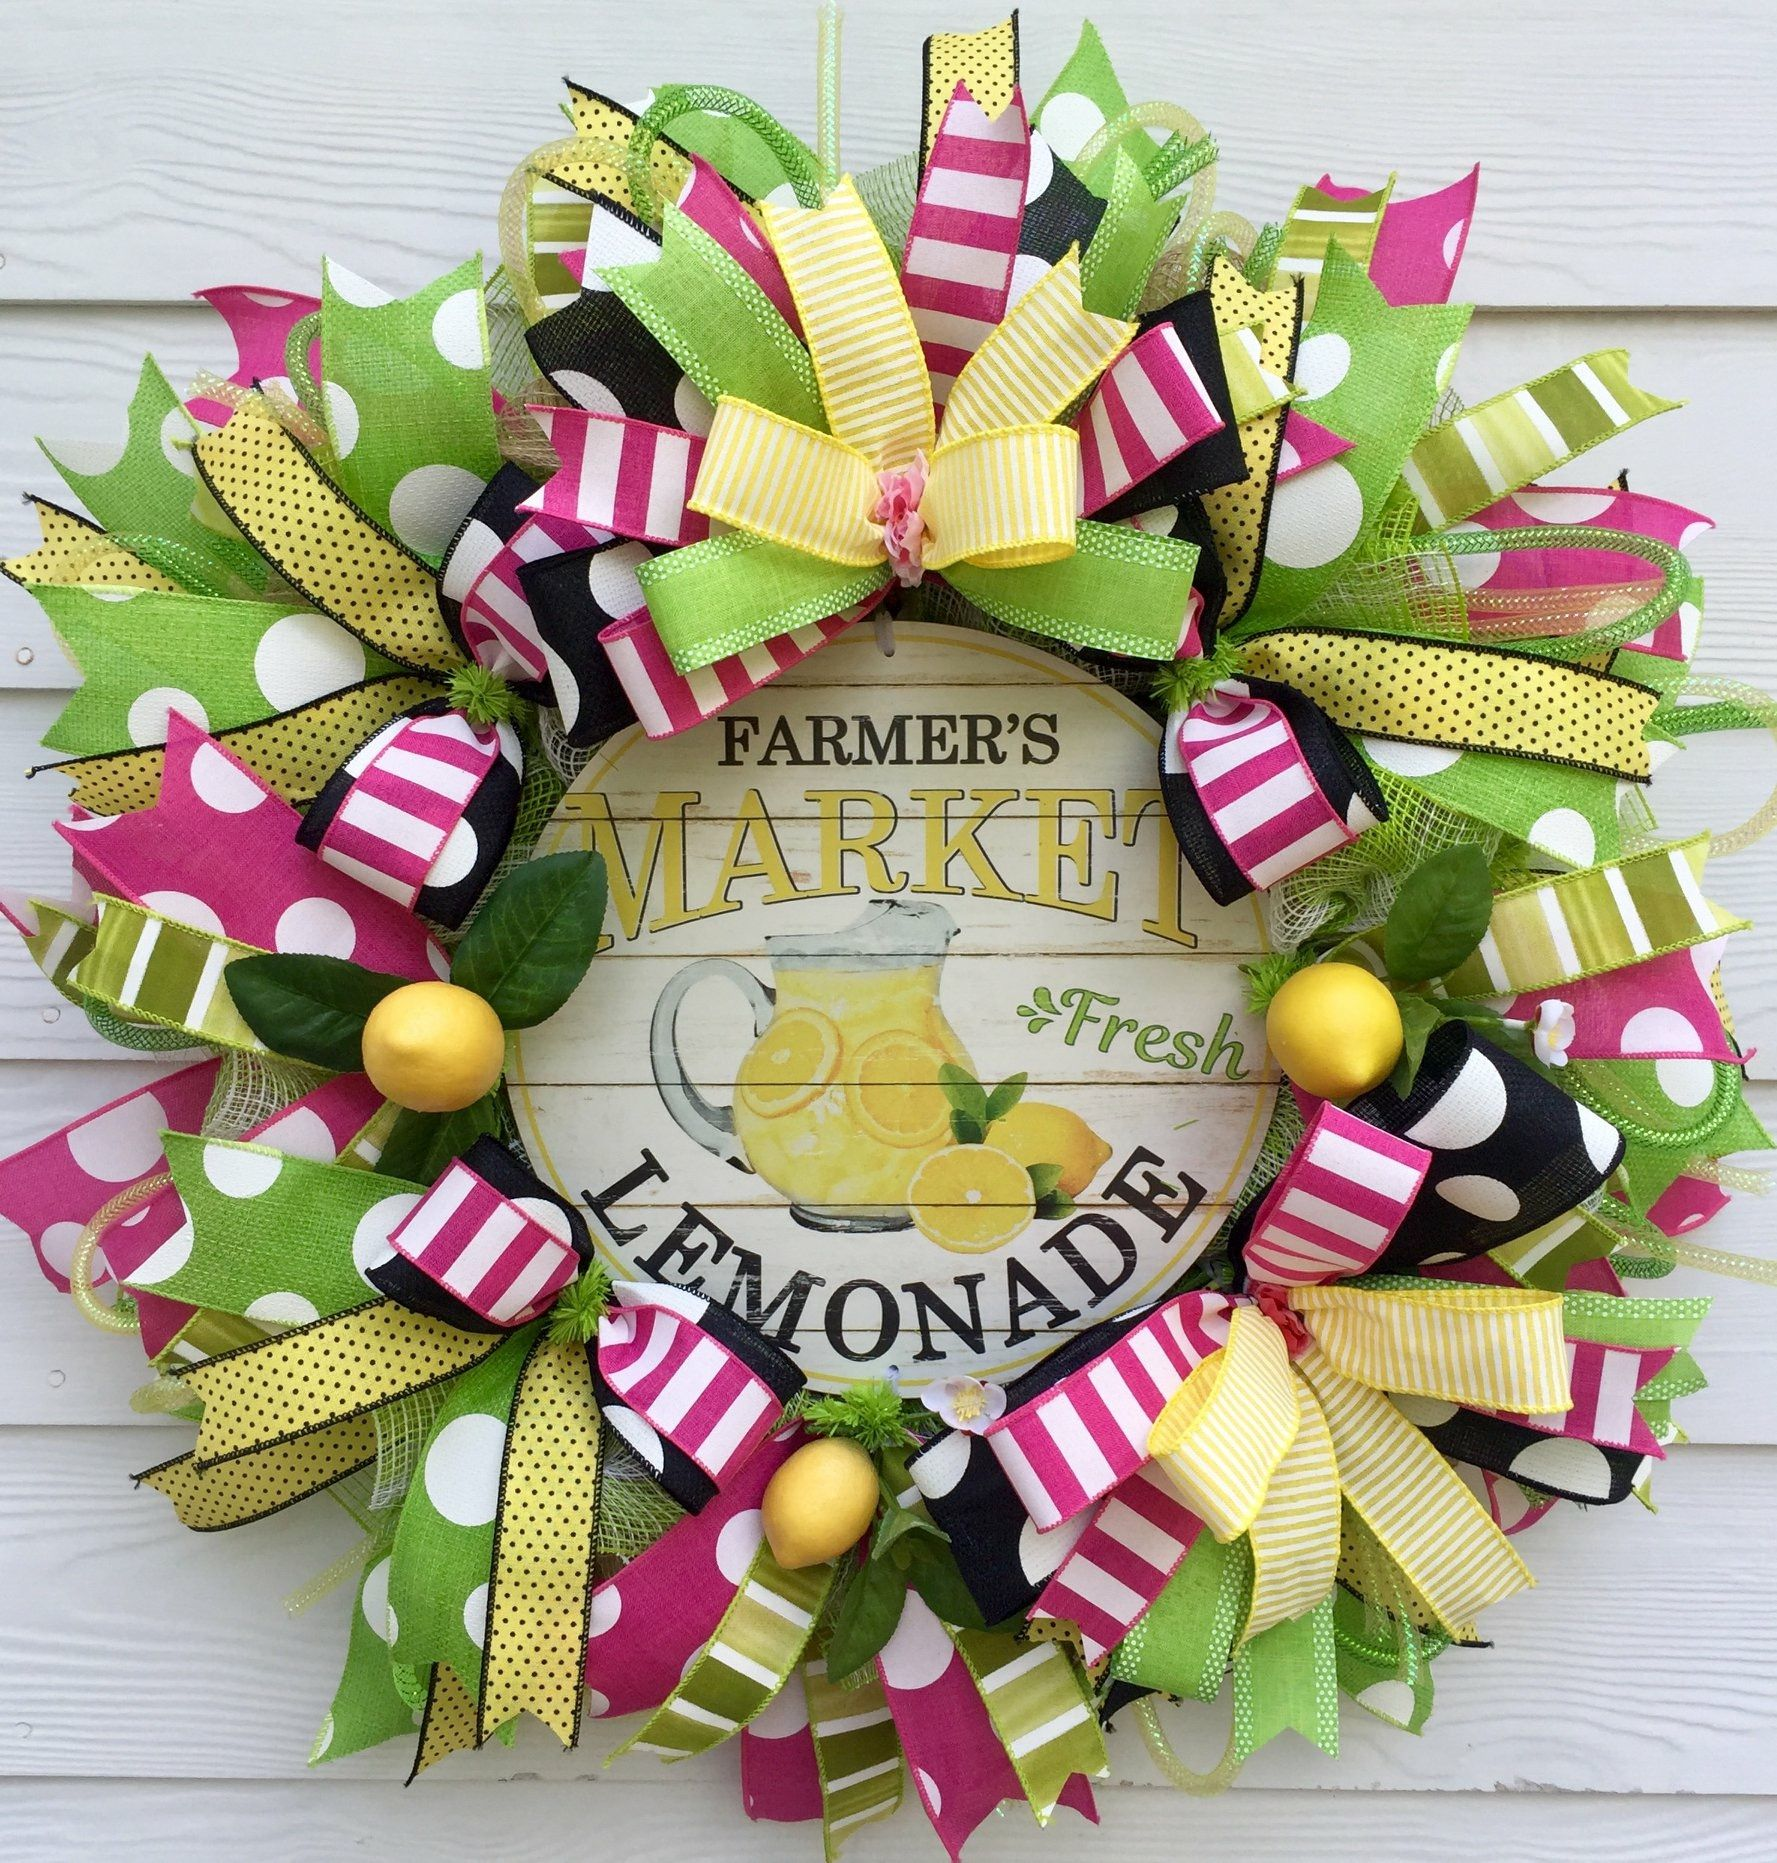 Pin by Shannon Newlin on Christmas mesh wreaths Pinterest